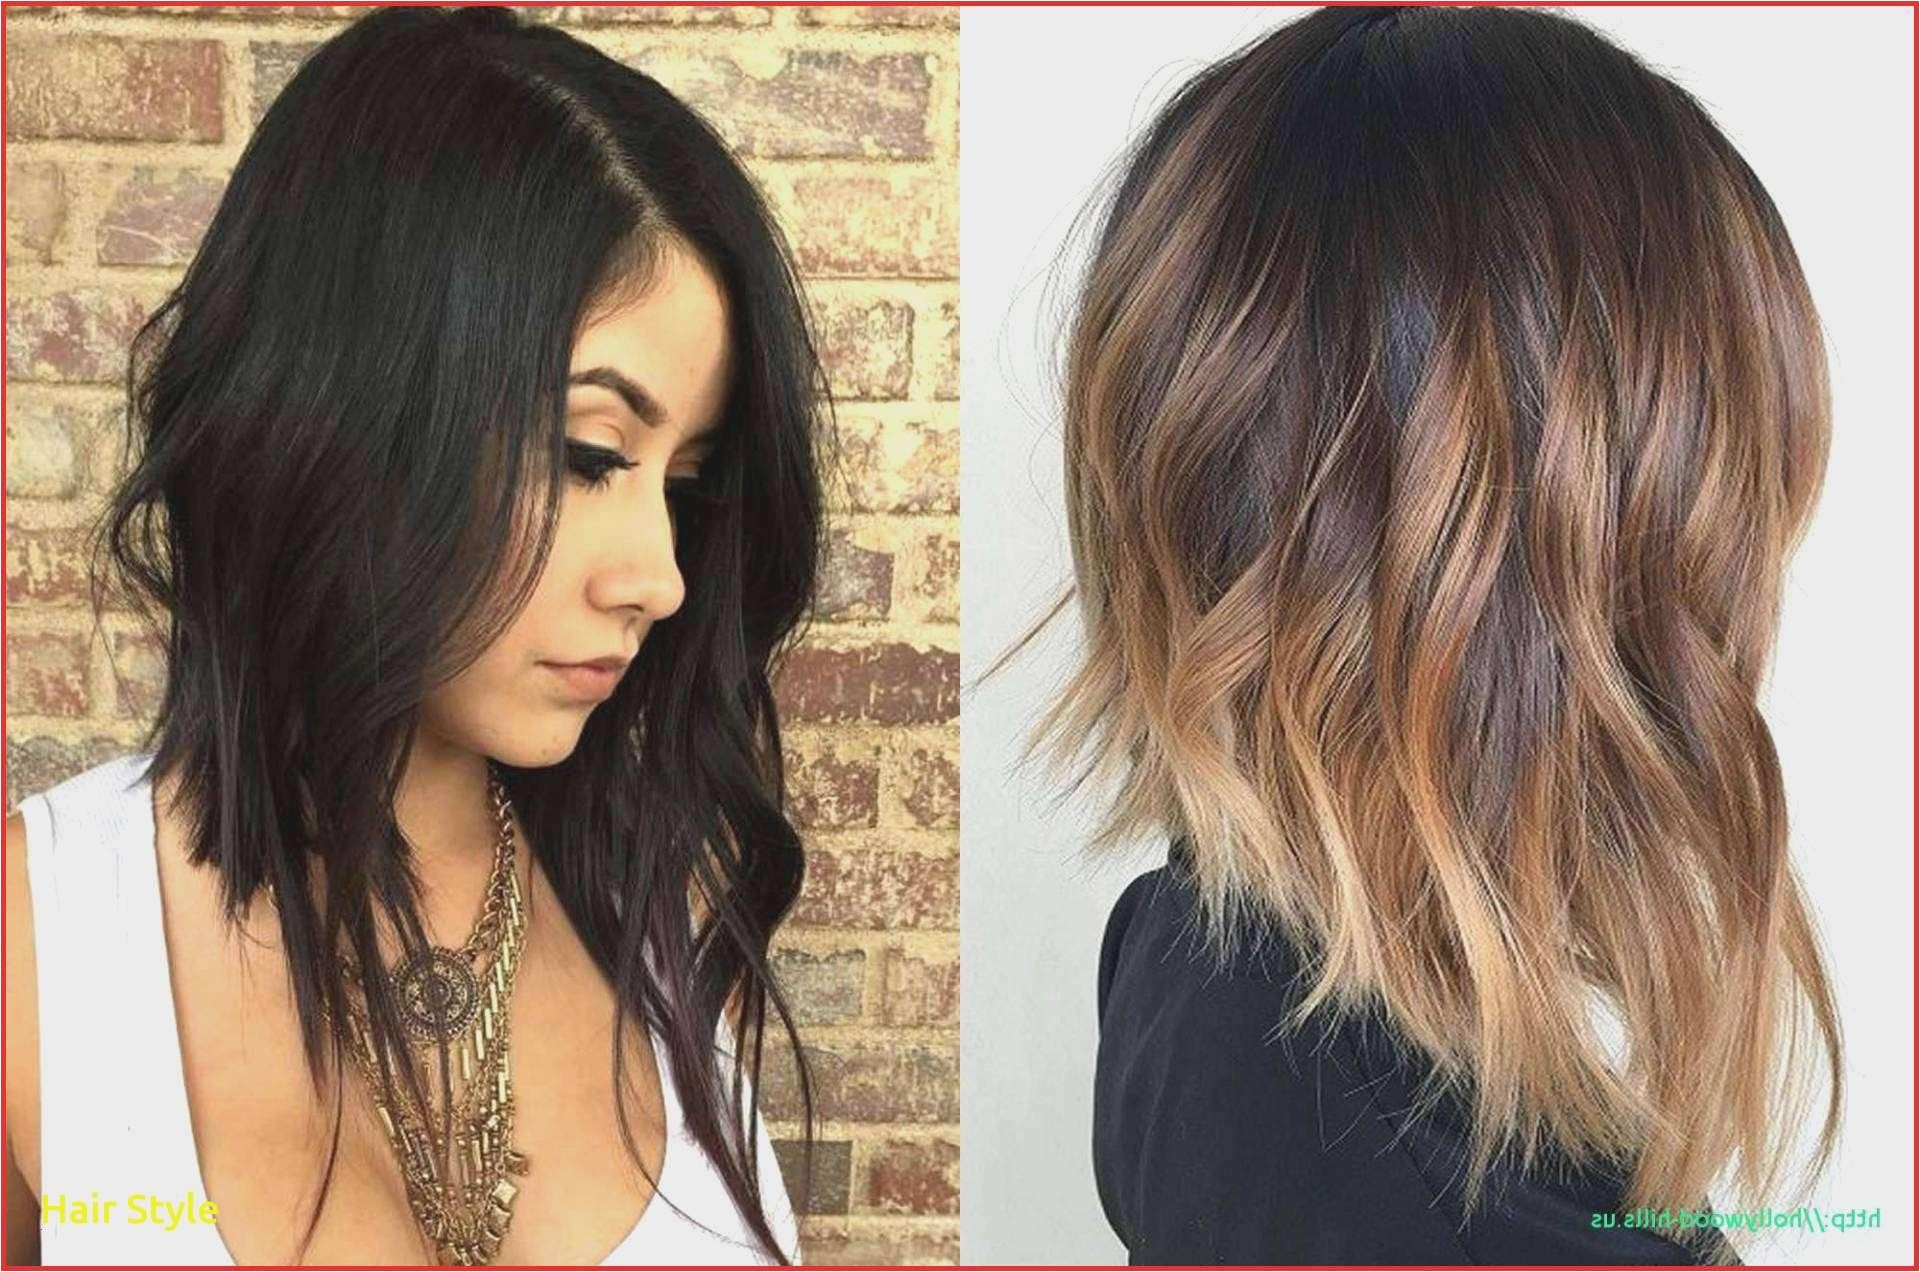 Haircuts for Girls New Different Hairstyles for Girls with Names Ideas